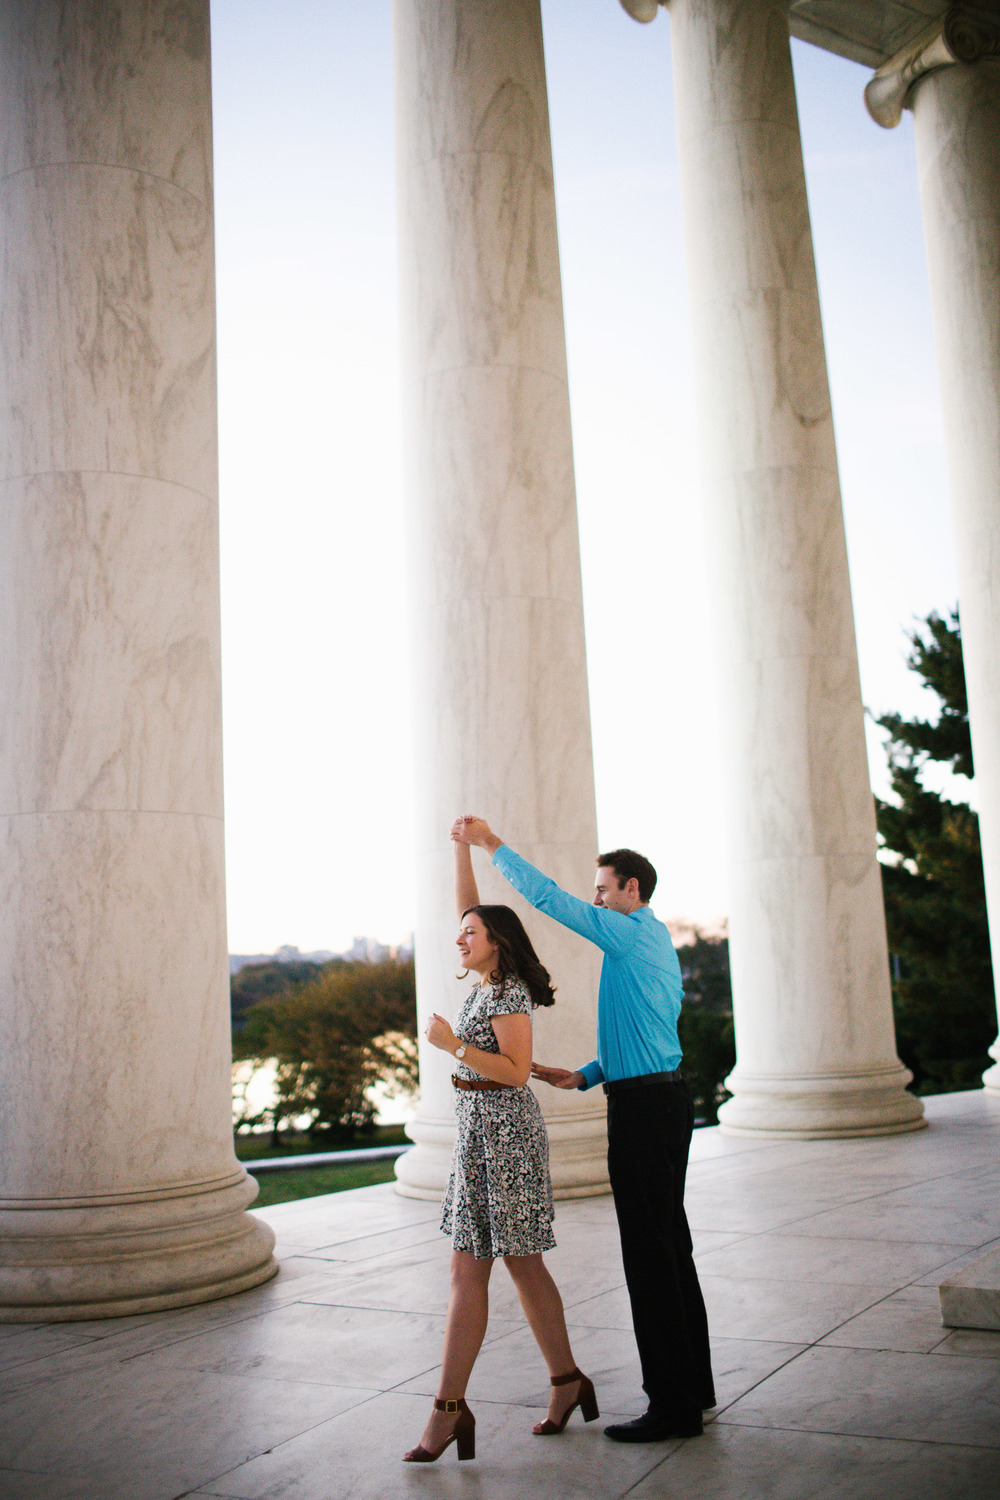 sunset portrait session of engaged couple bride and groom wedding washington dc